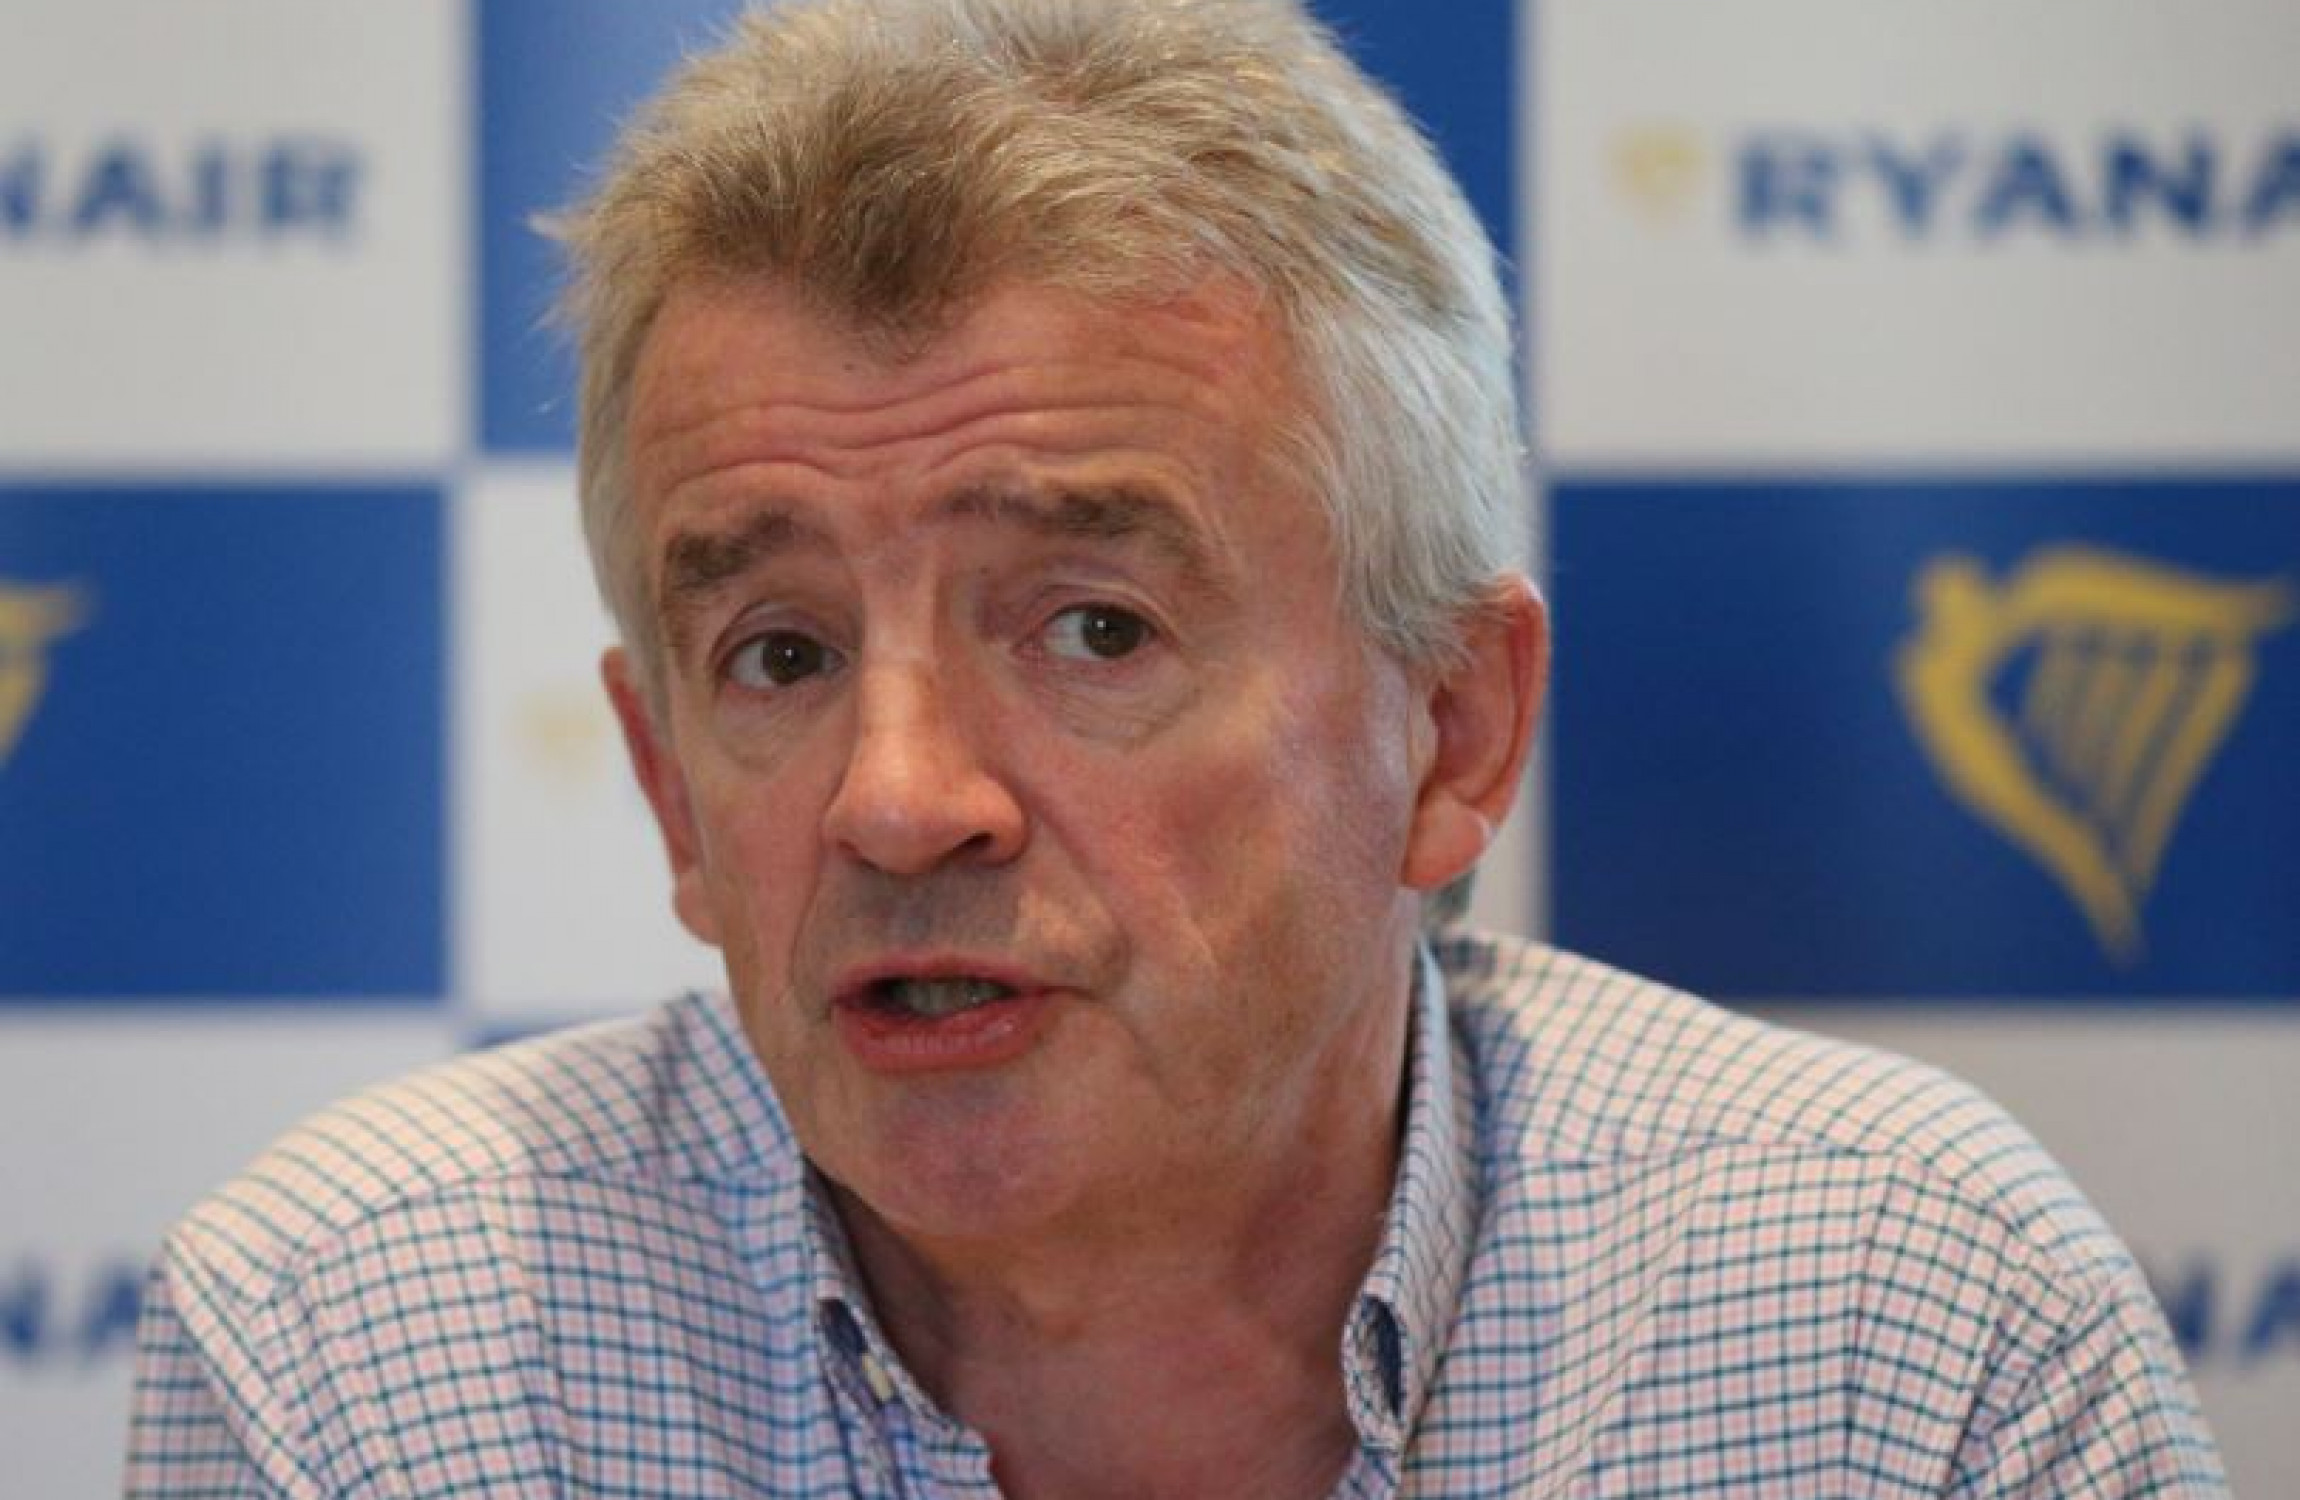 Ryanair cancelling flights so pilots can go on holiday